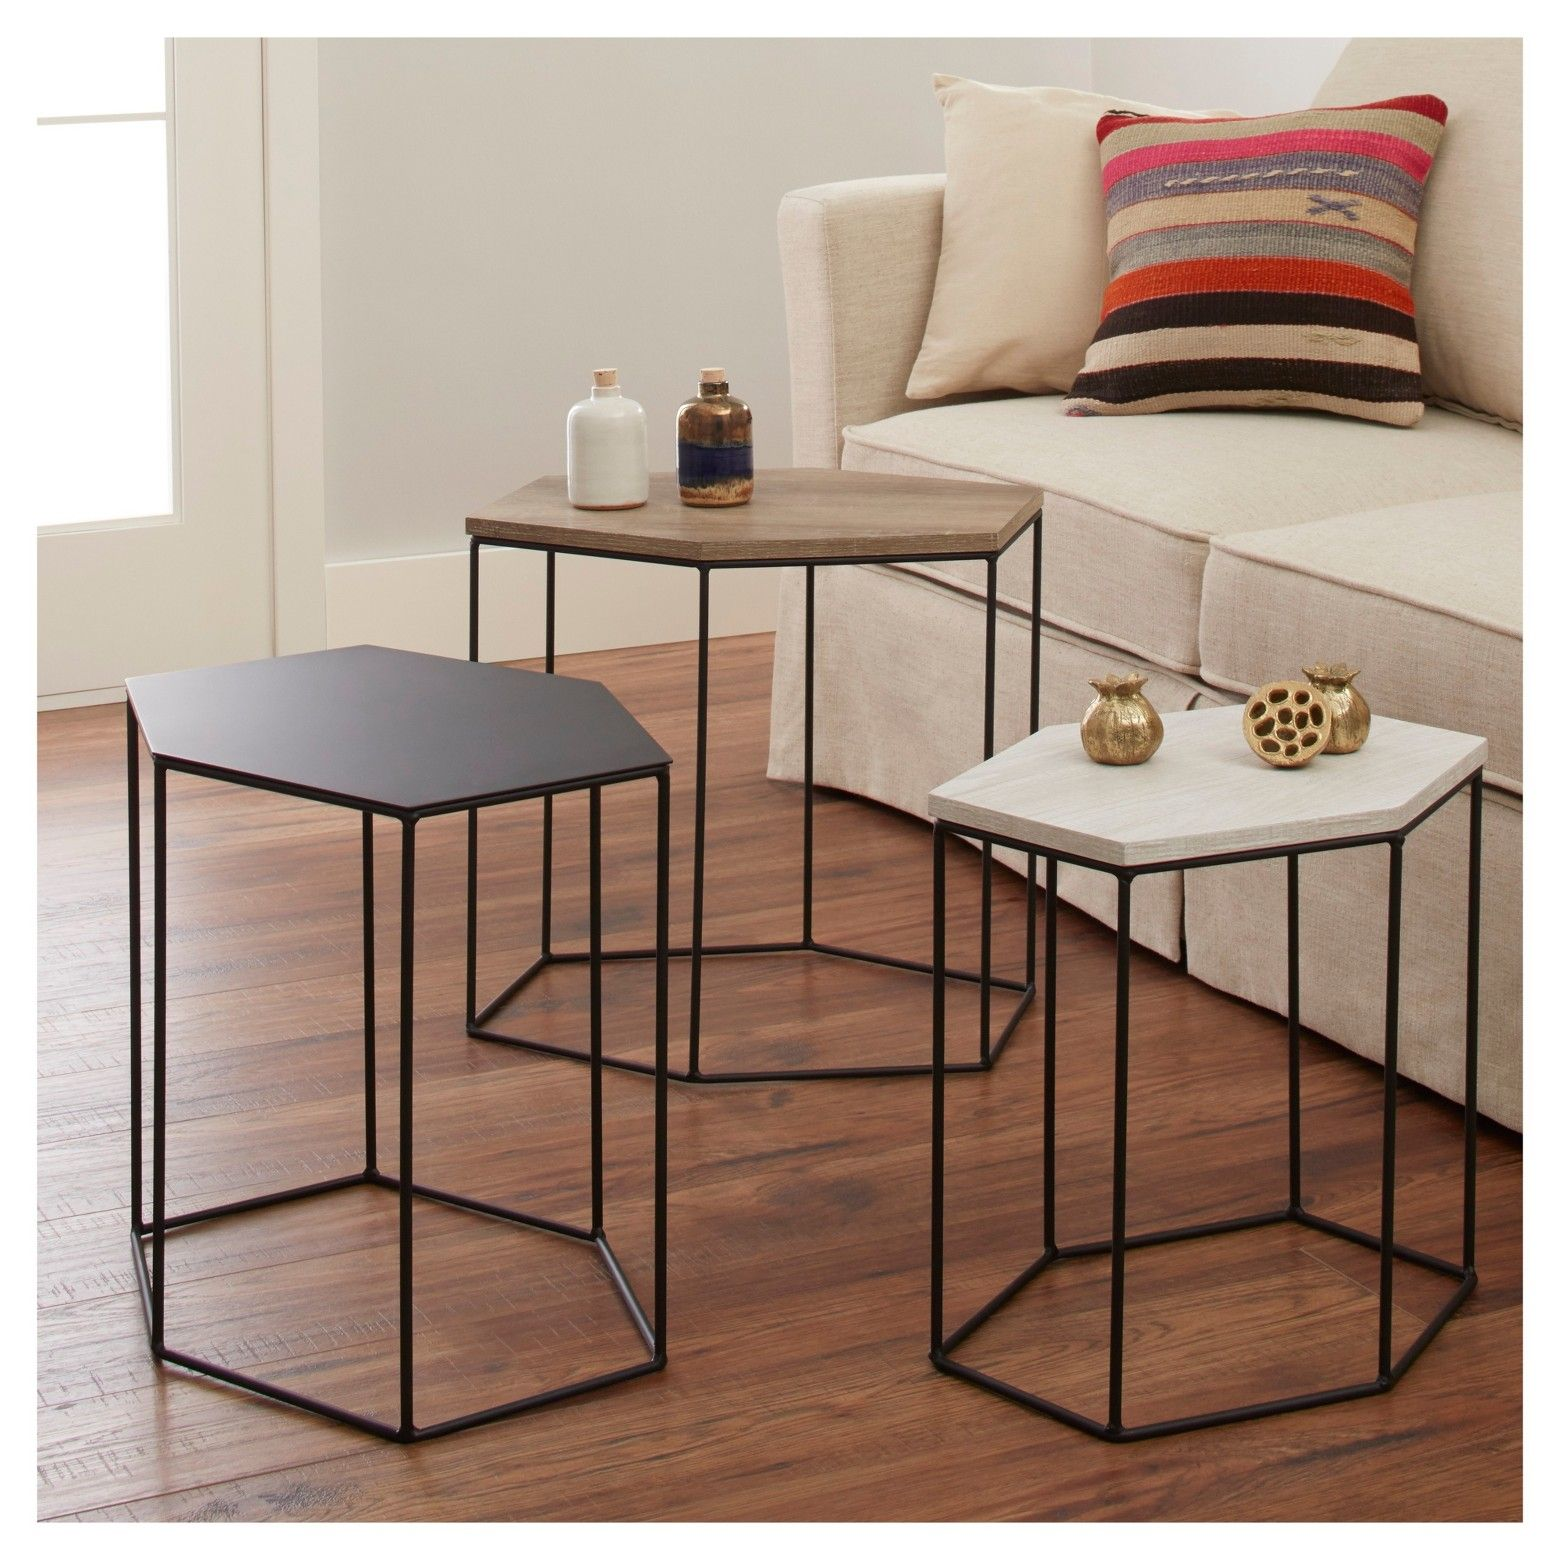 the whitney pack hexagonal accent tables threshold offer hexagon table convenience and modern design small for your home office red oval tablecloth bar top height nightstand with